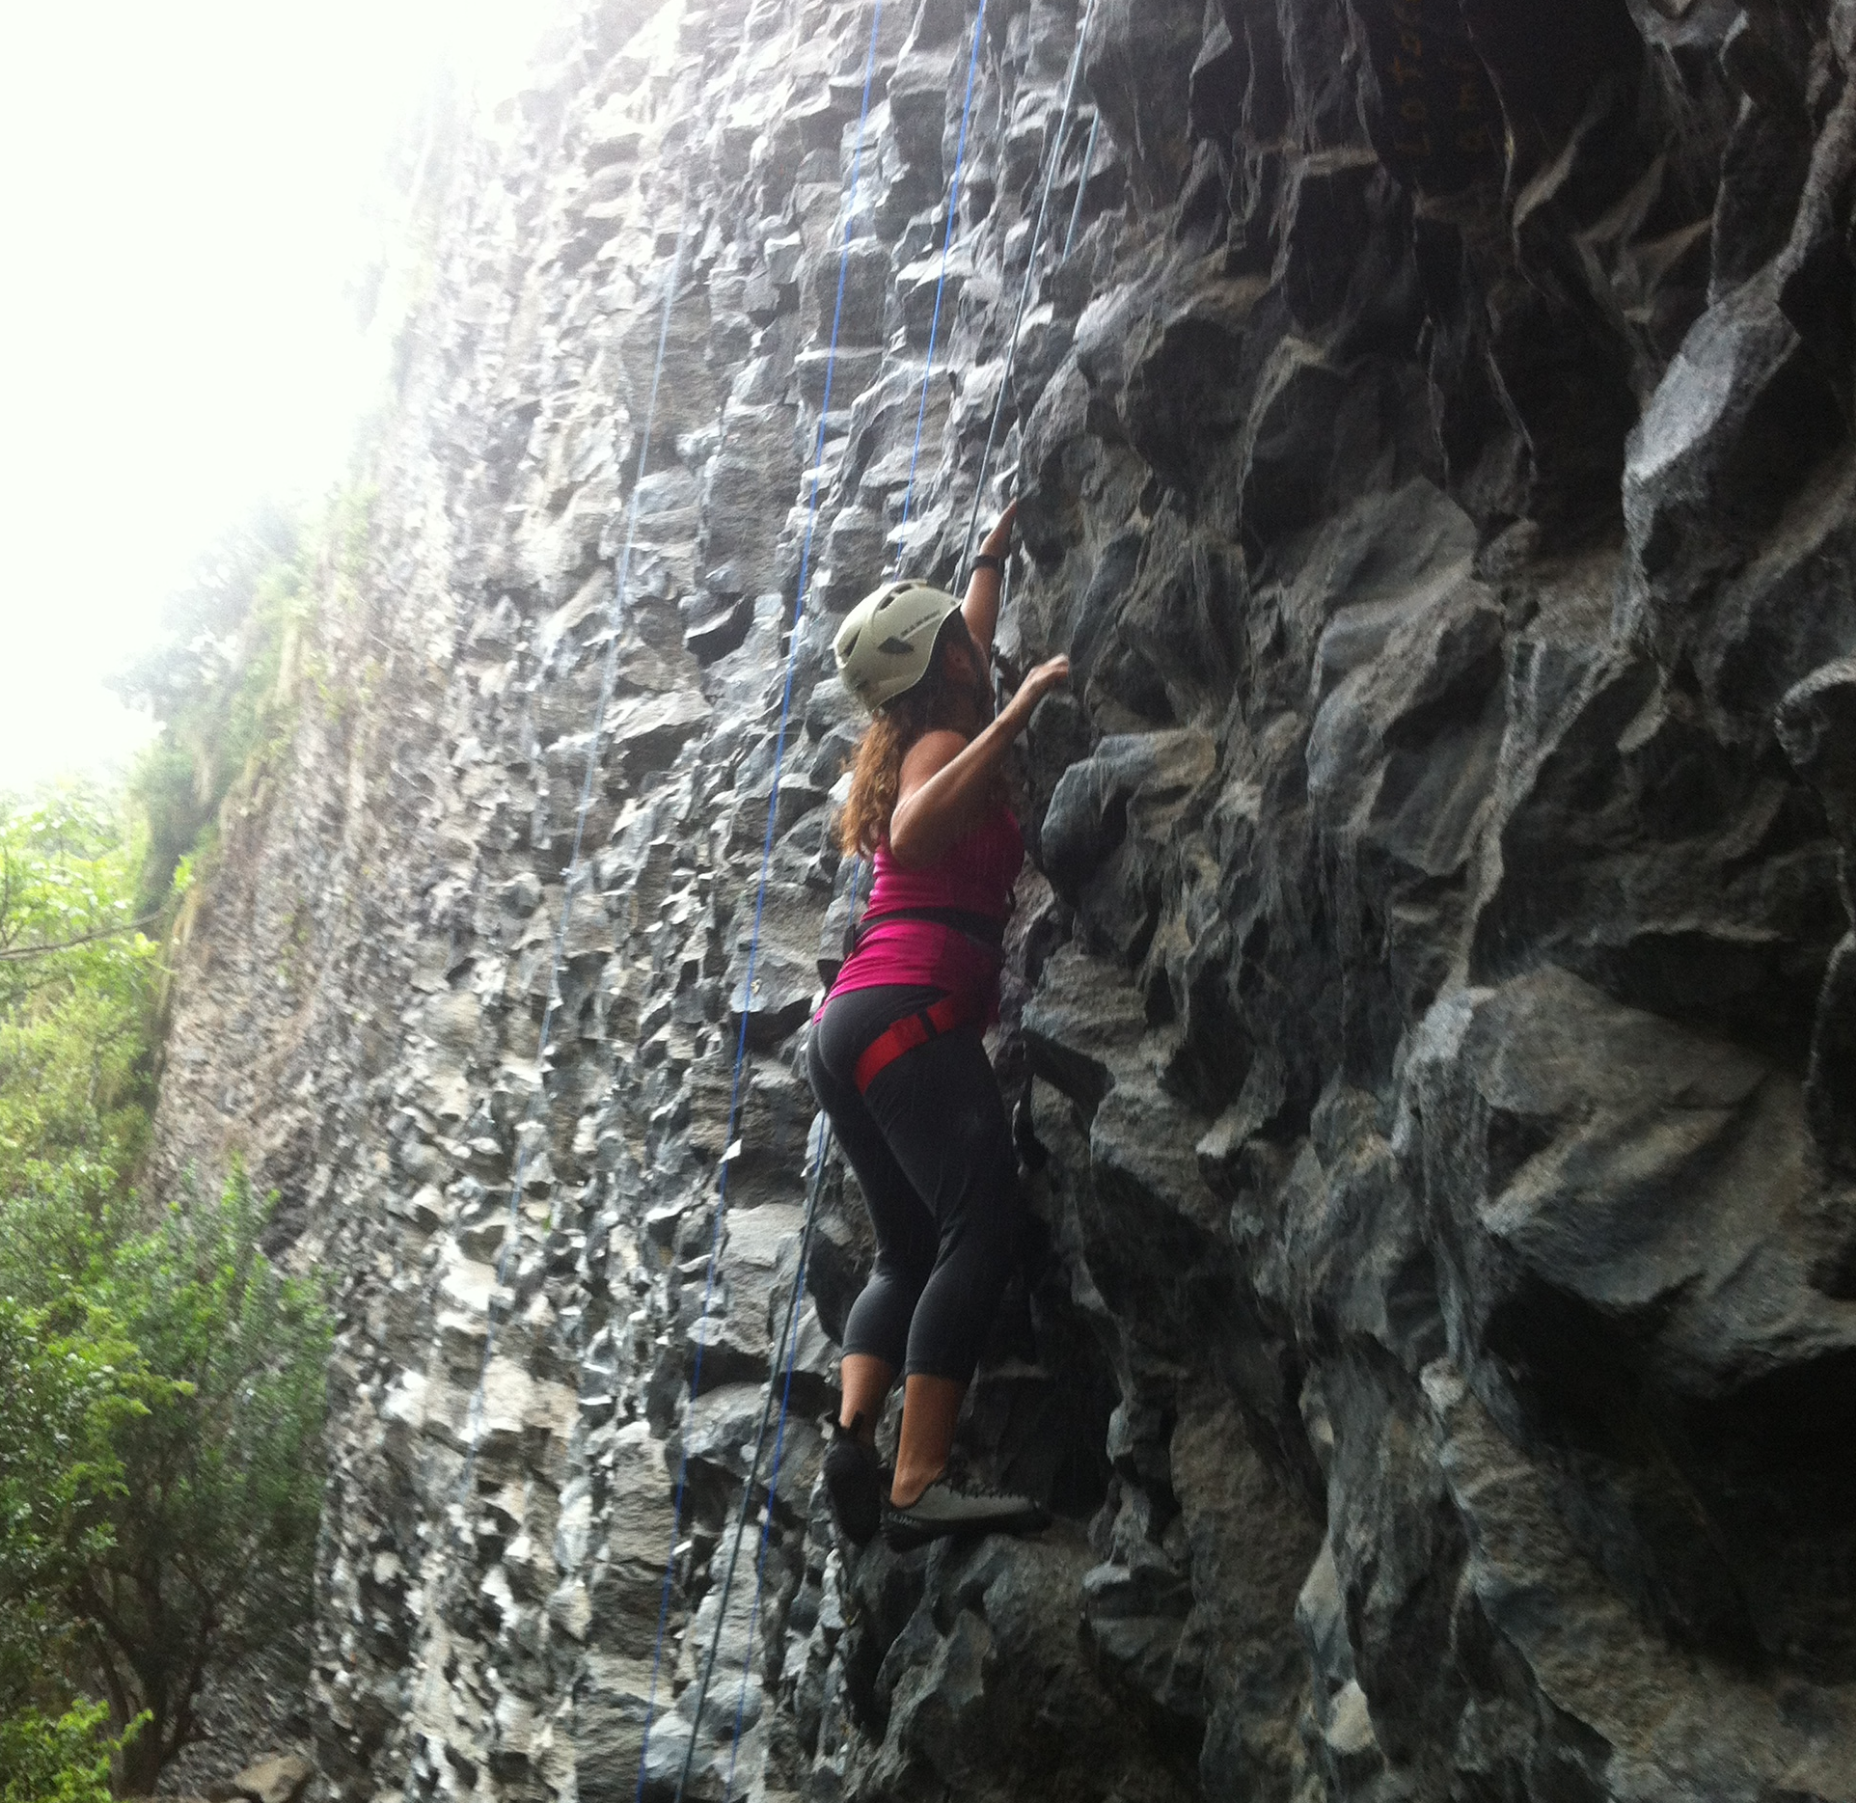 Rock Climbing in Costa Rica